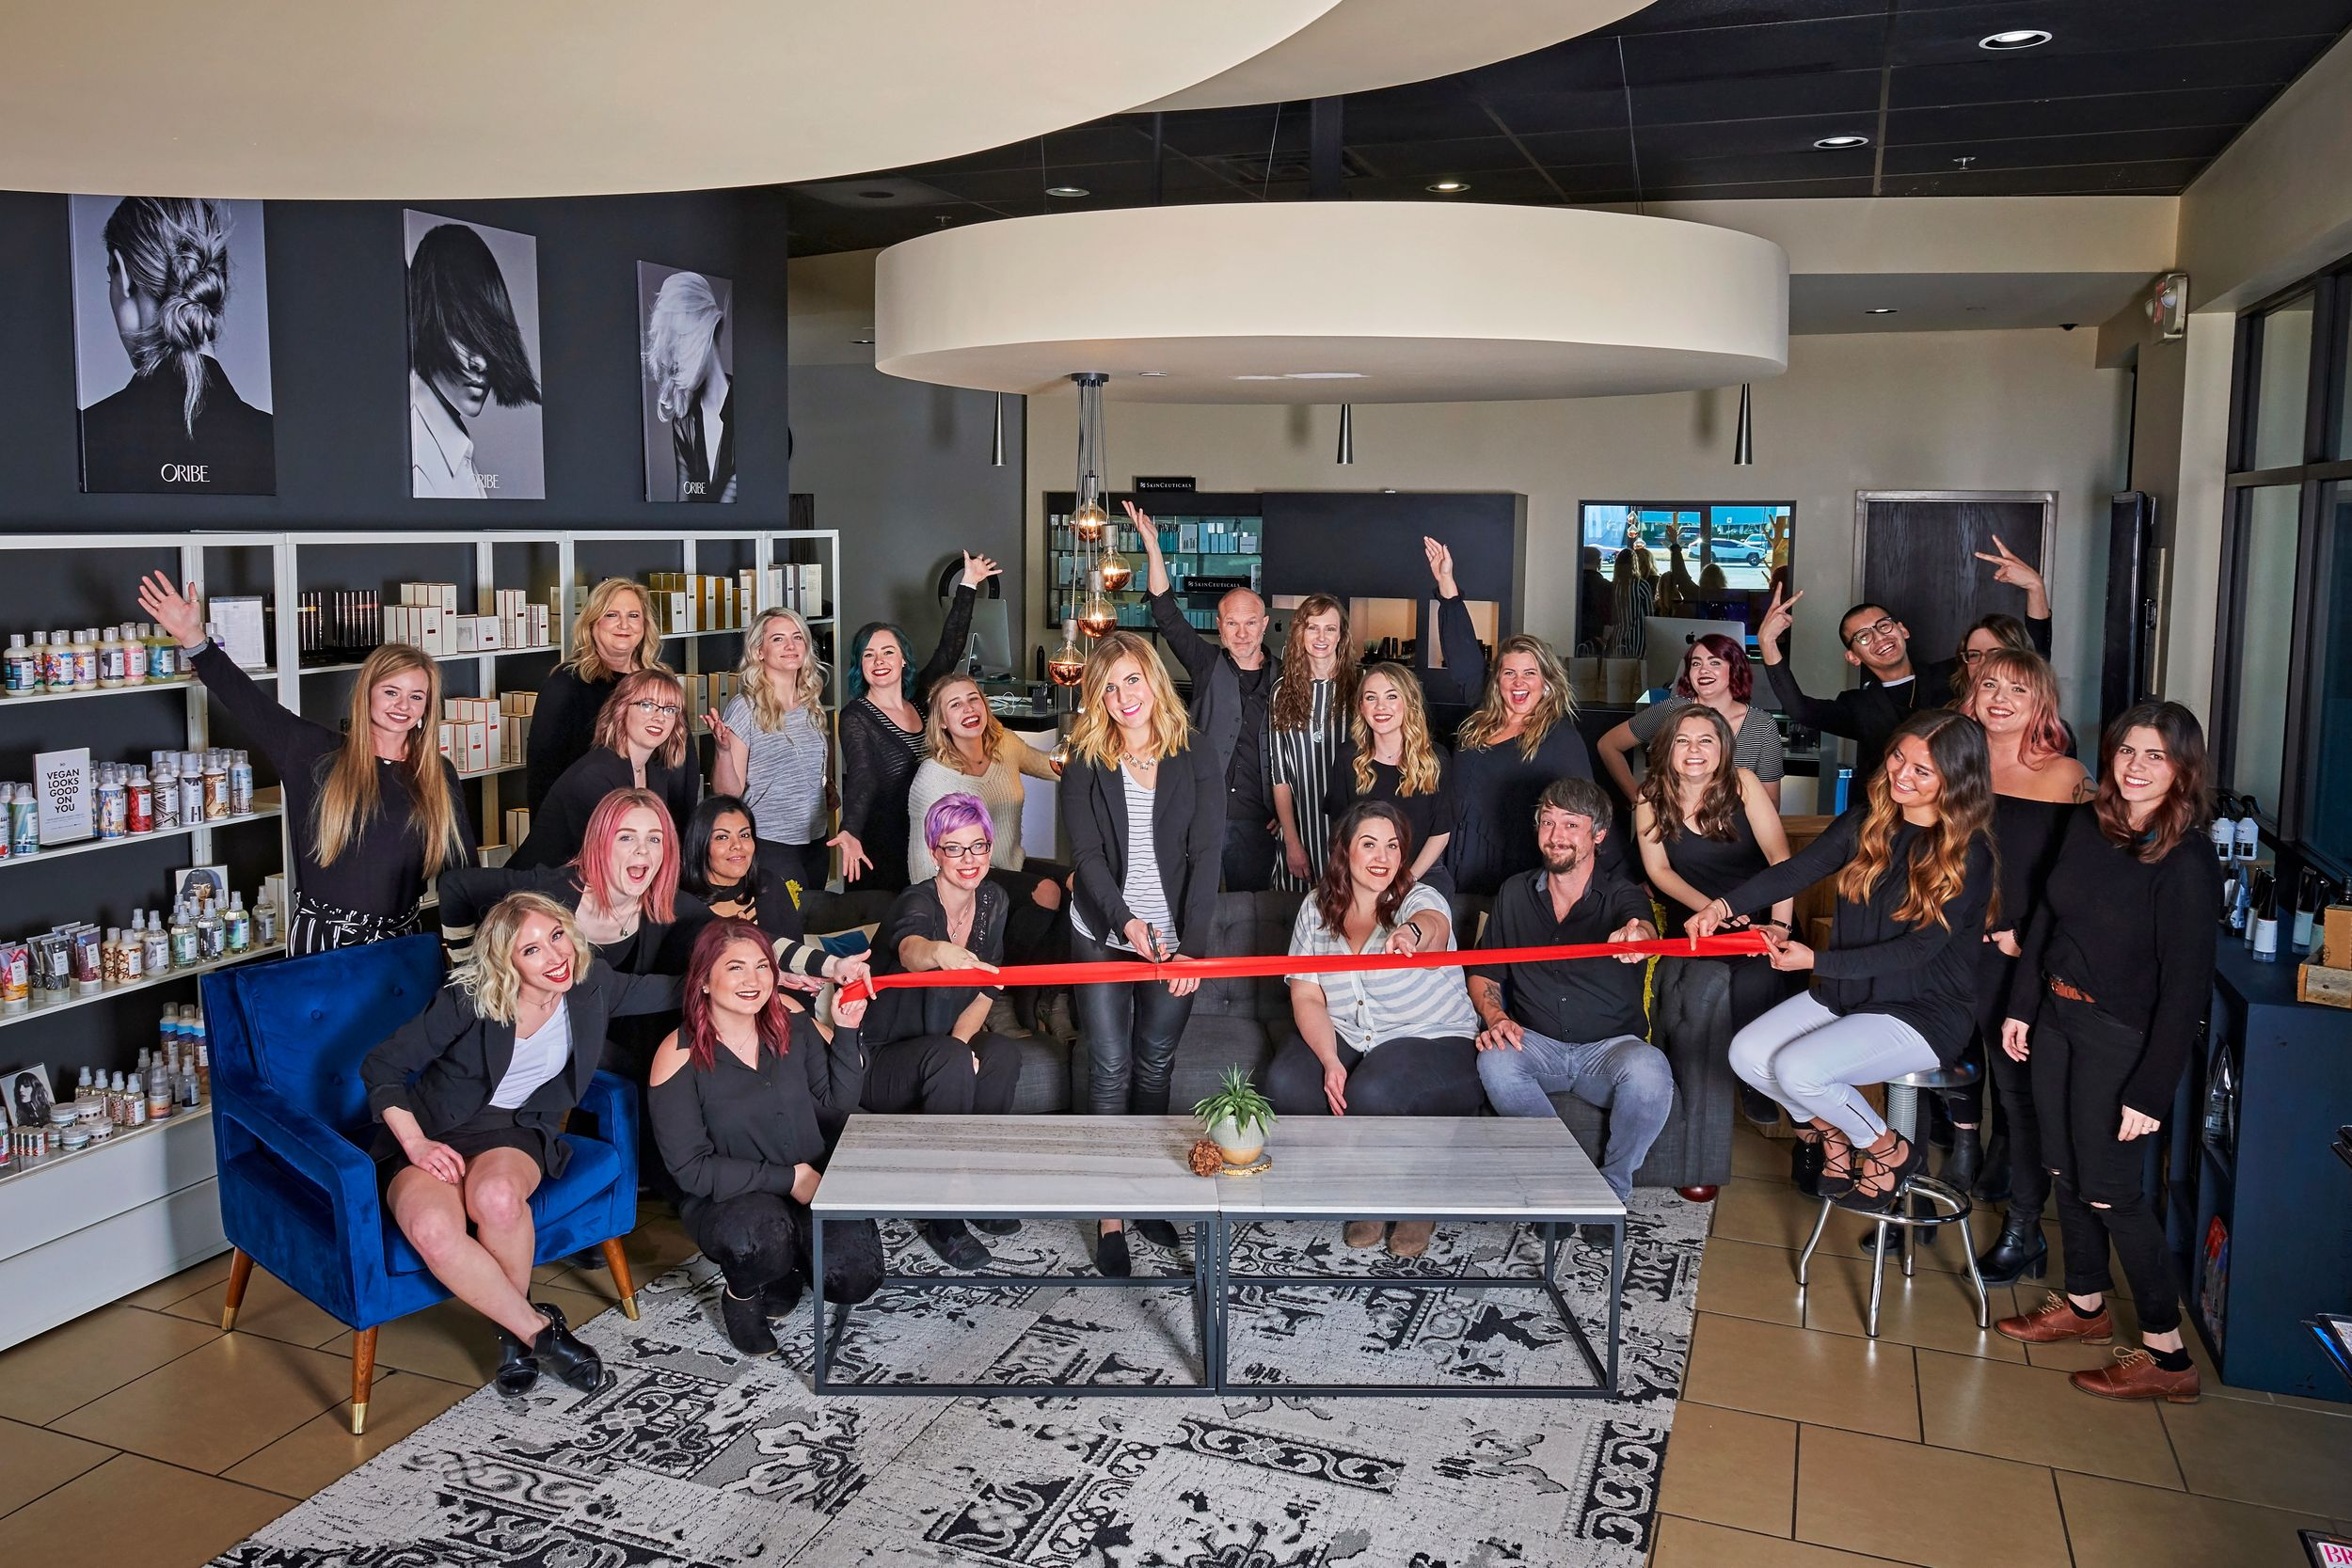 Employees at hair salon cutting ribbon for new business